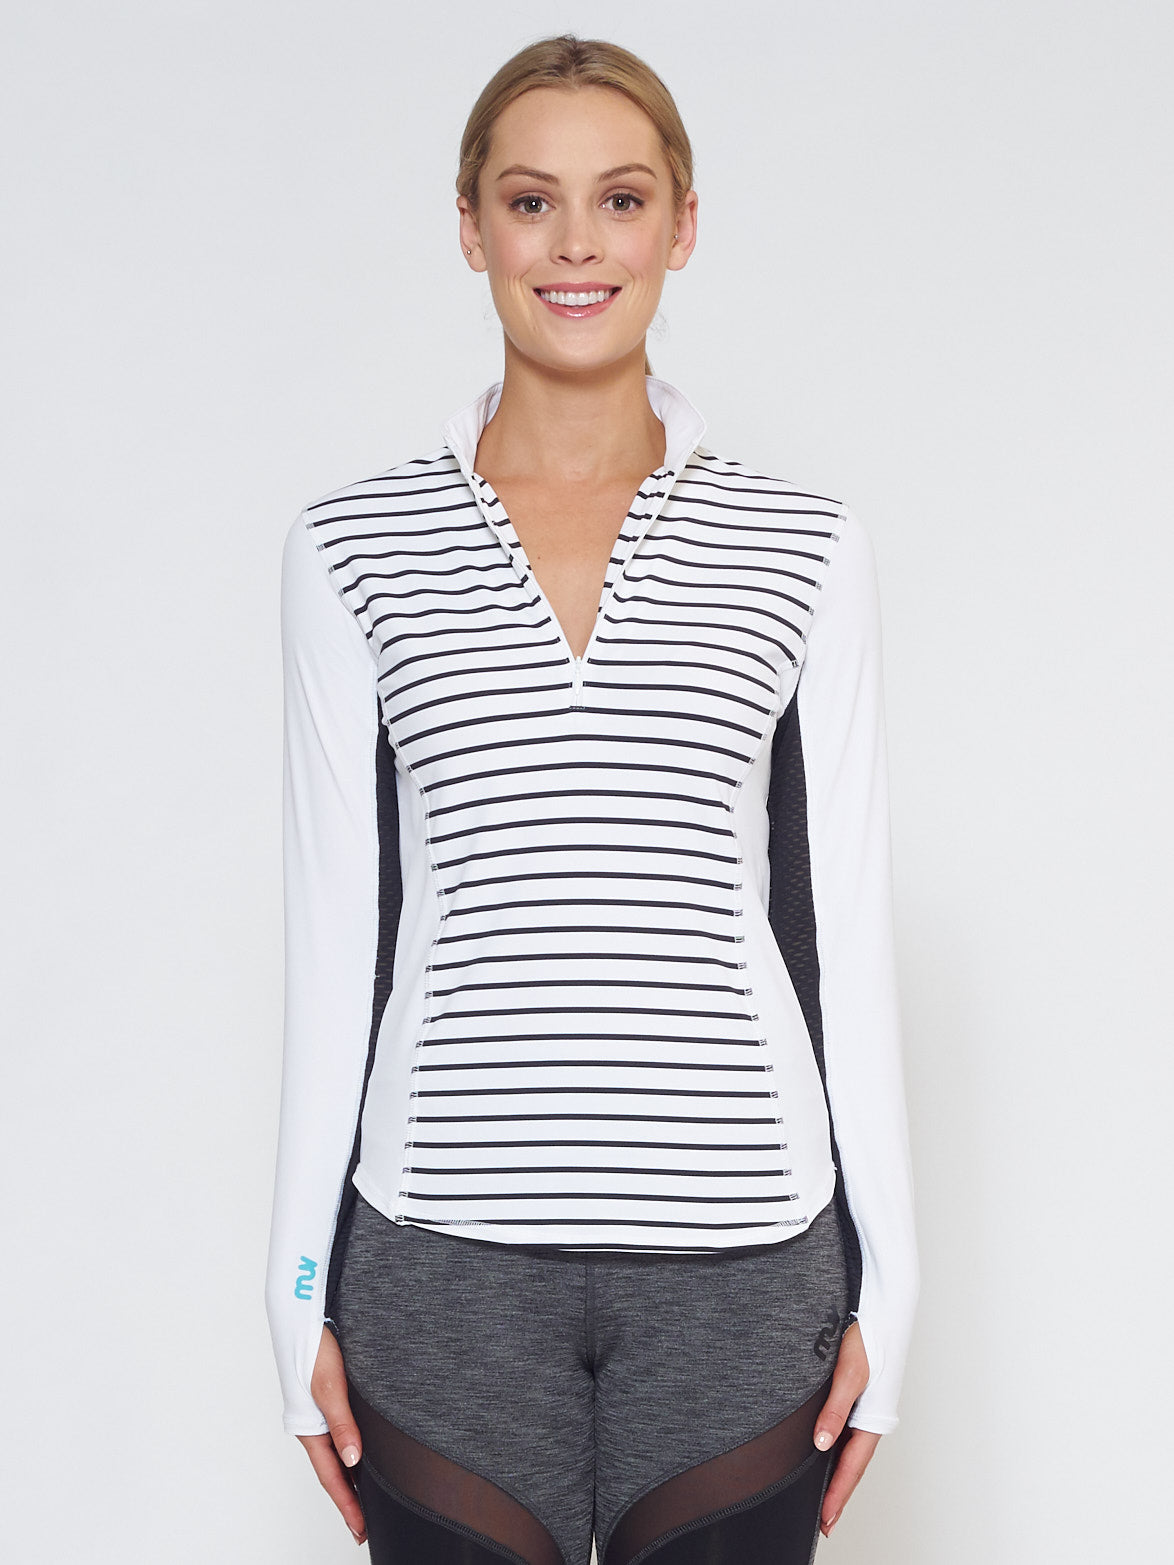 MUV Sportswear_LIQUID Long-Sleeve Collared Shirt_Colour Stripe_UV Protecting Sportswear